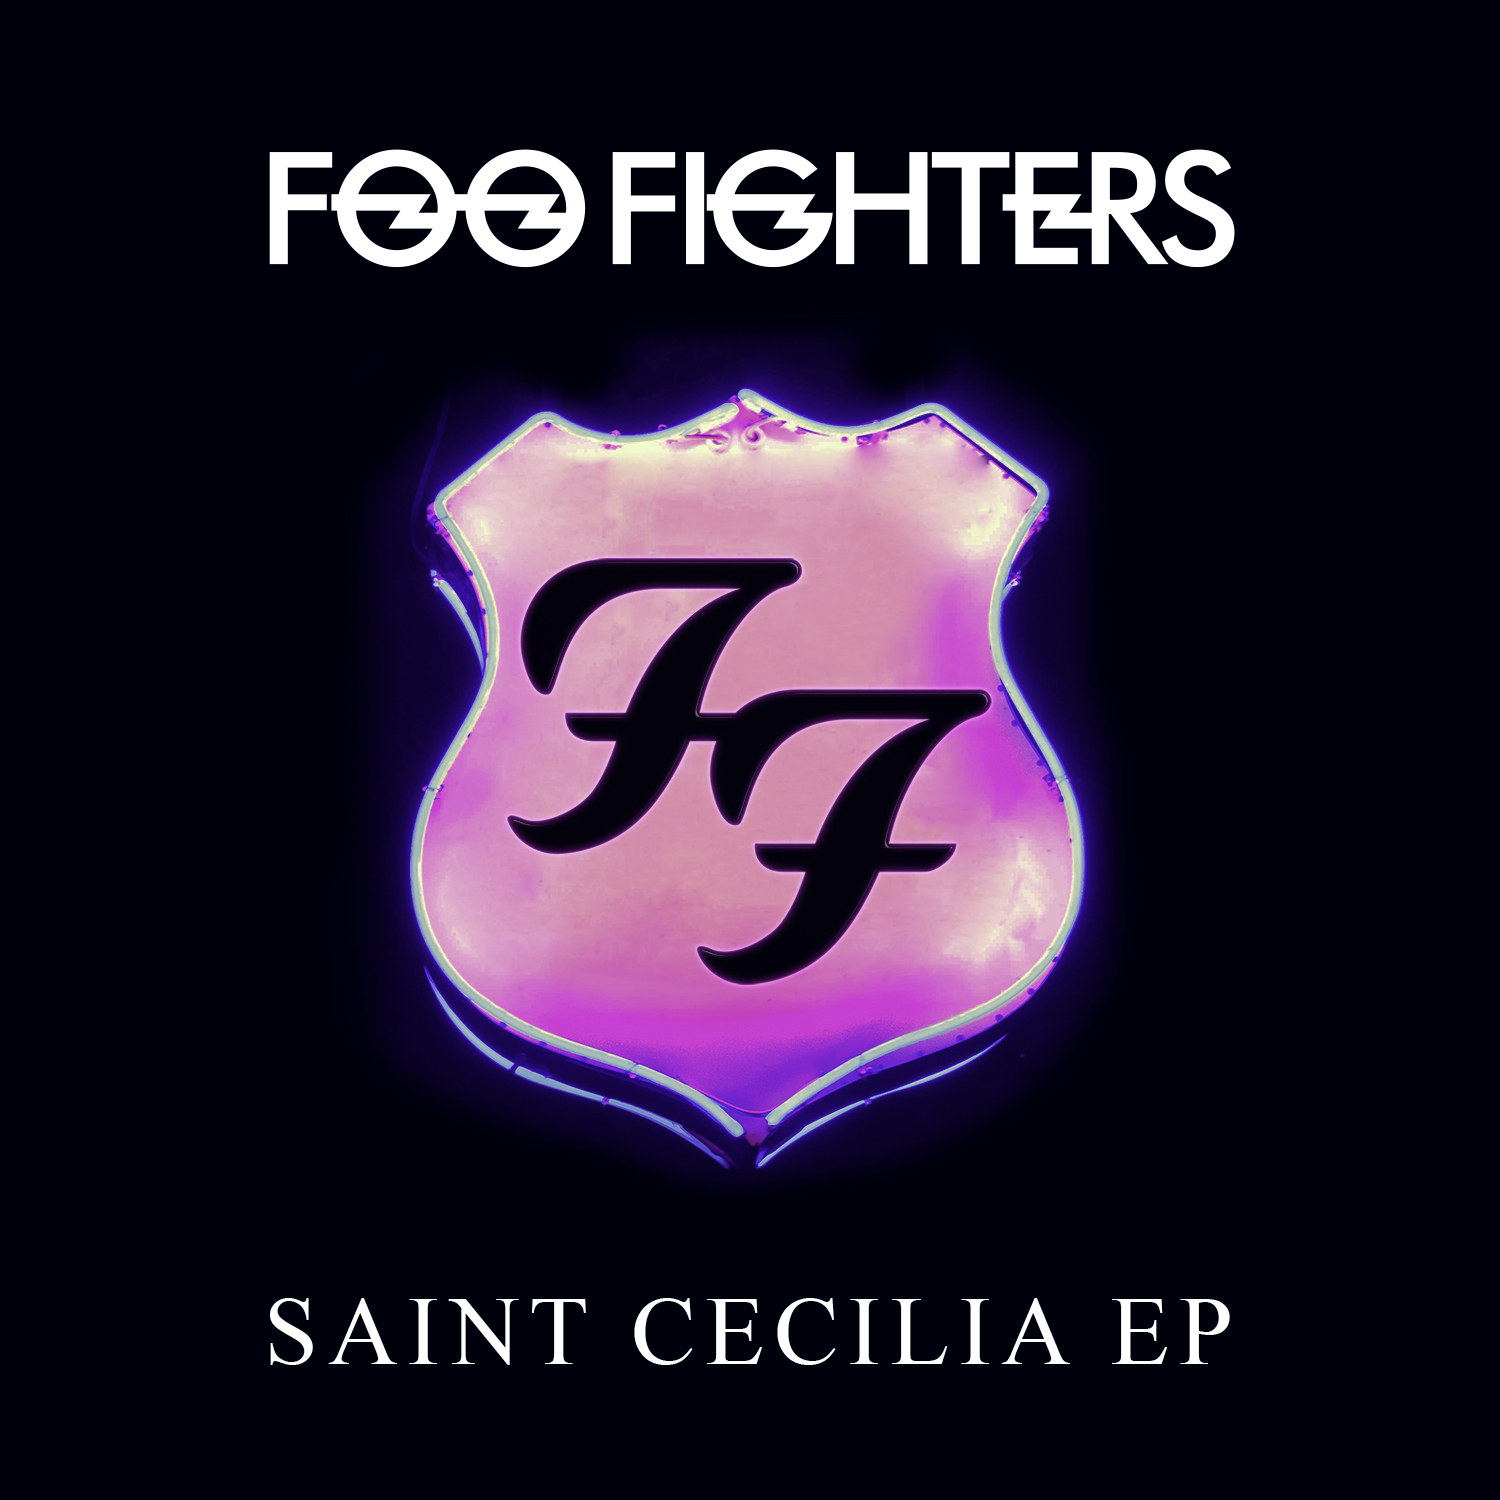 Foo Fighters – Saint Cecilia (EP Review)